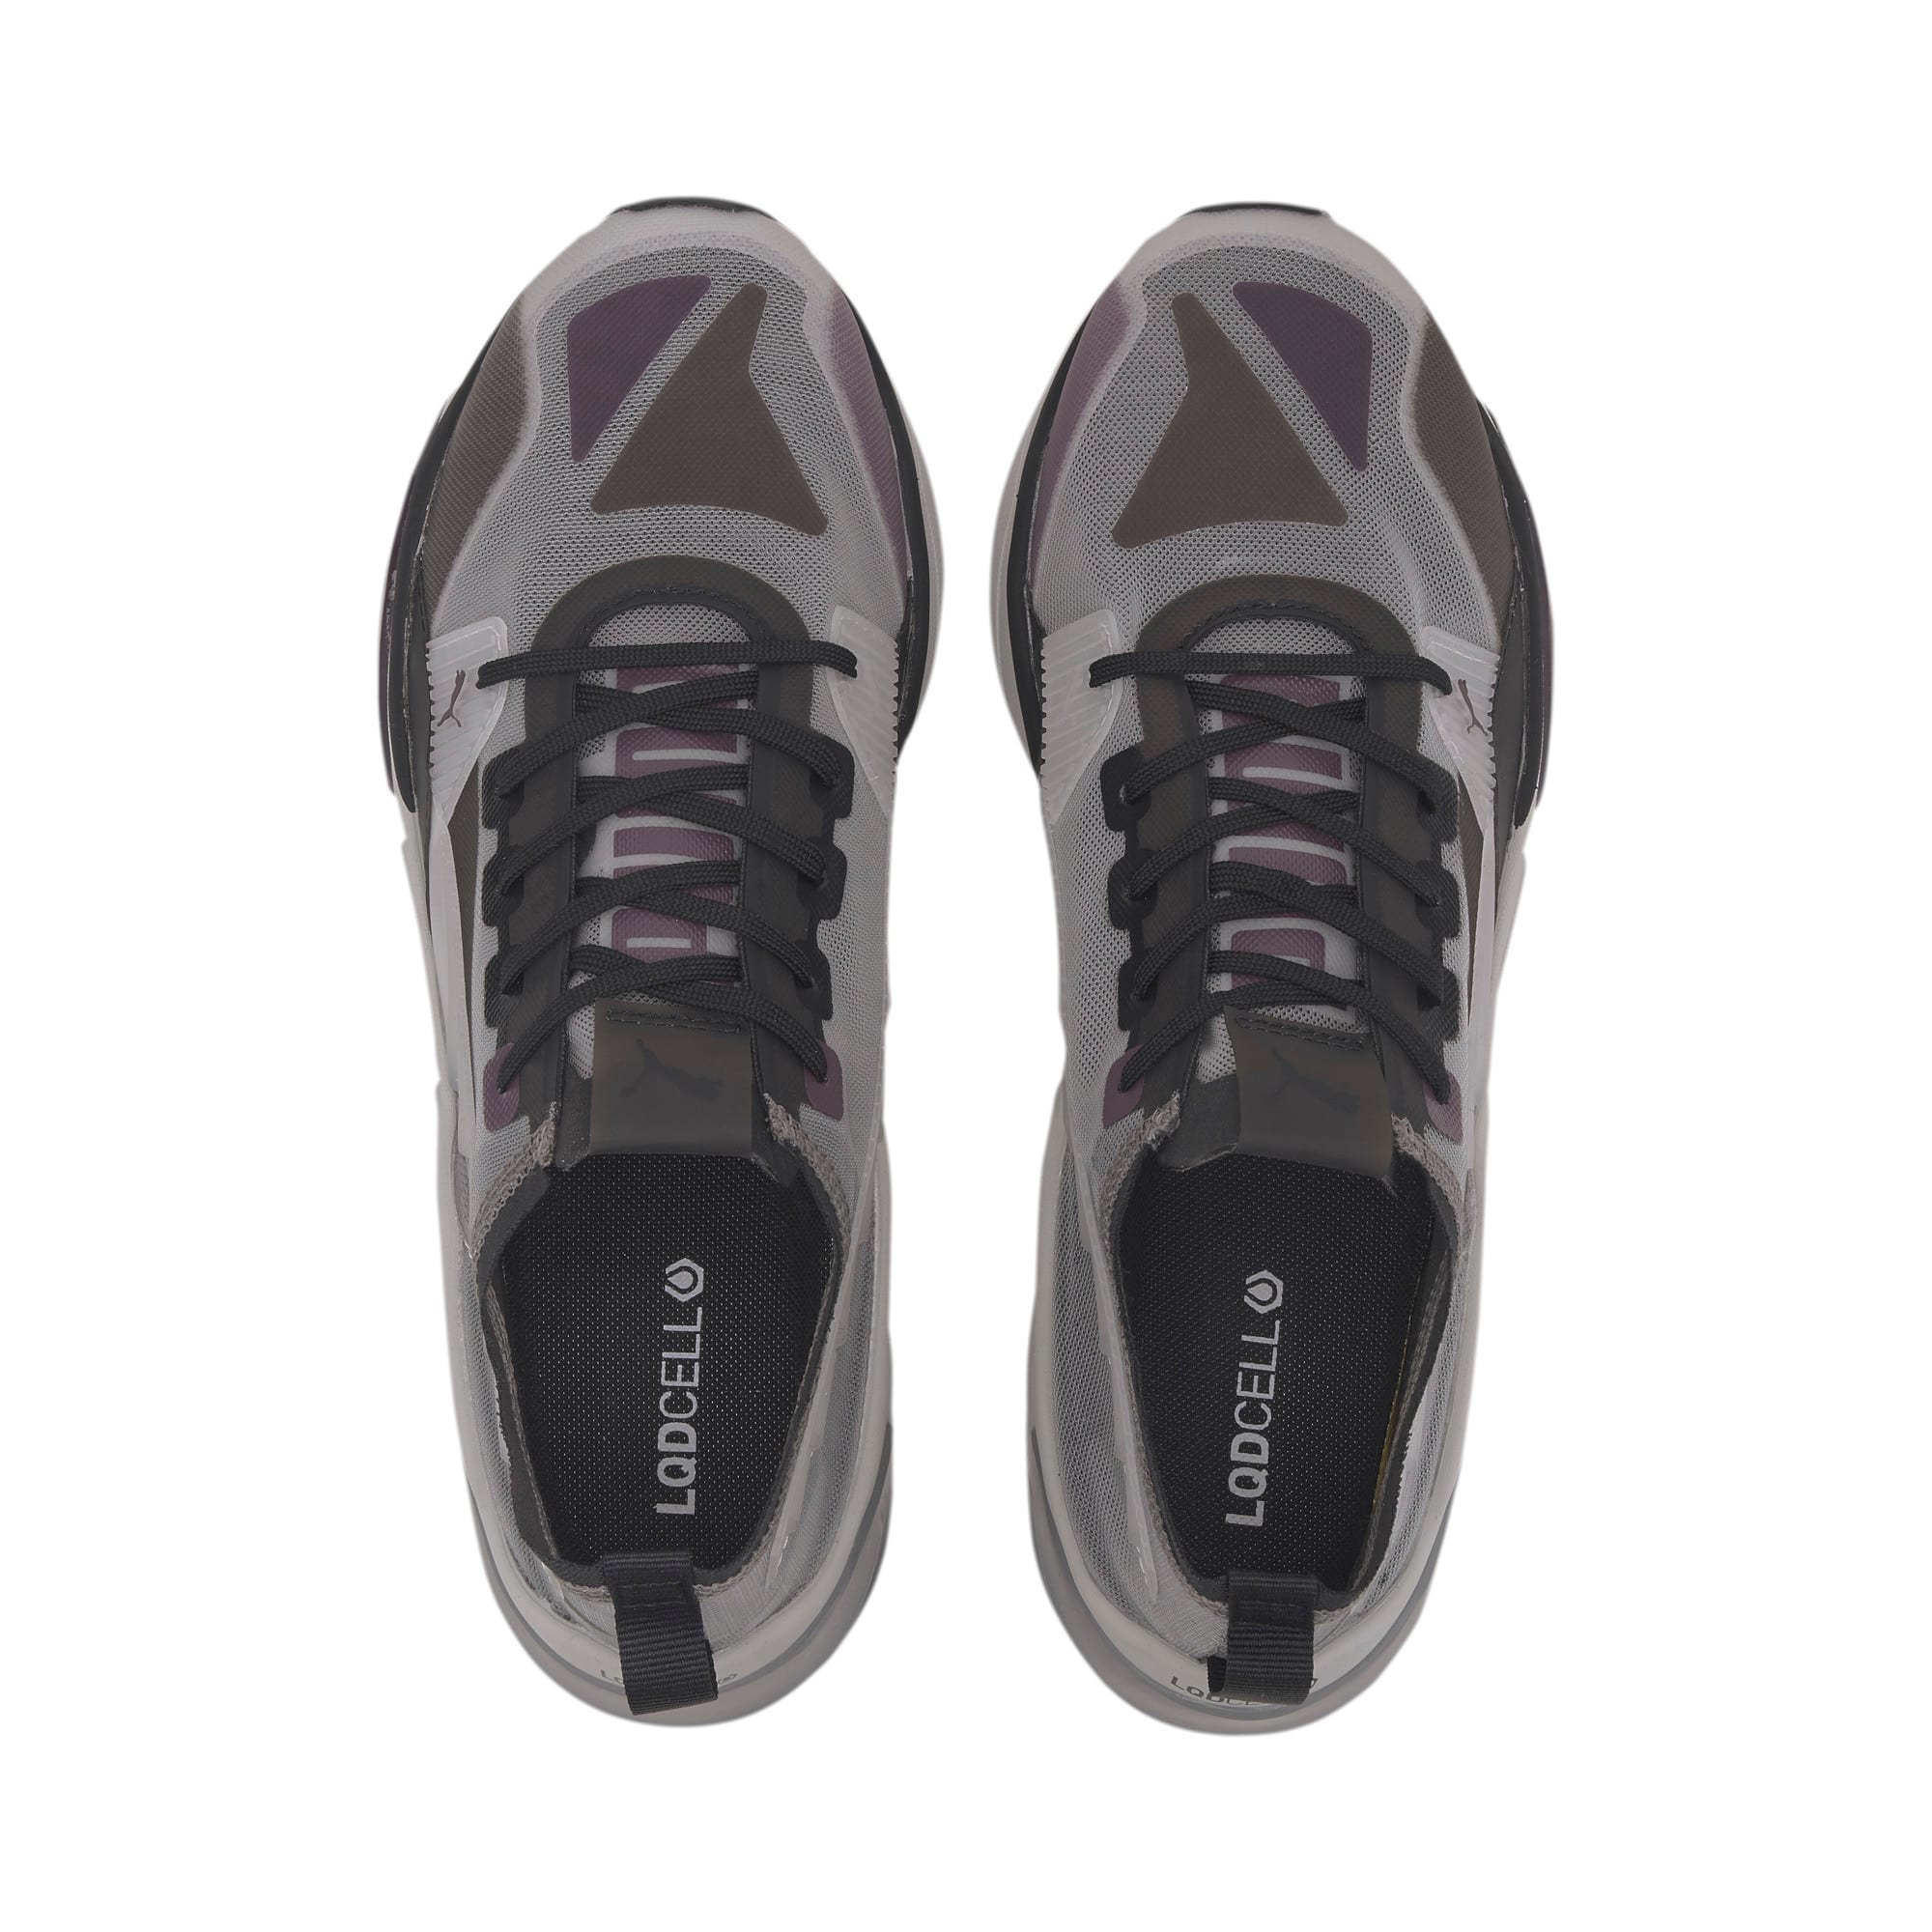 LQDCELL Optic Sheer Training Shoes, Gray Violet-Puma Black, large